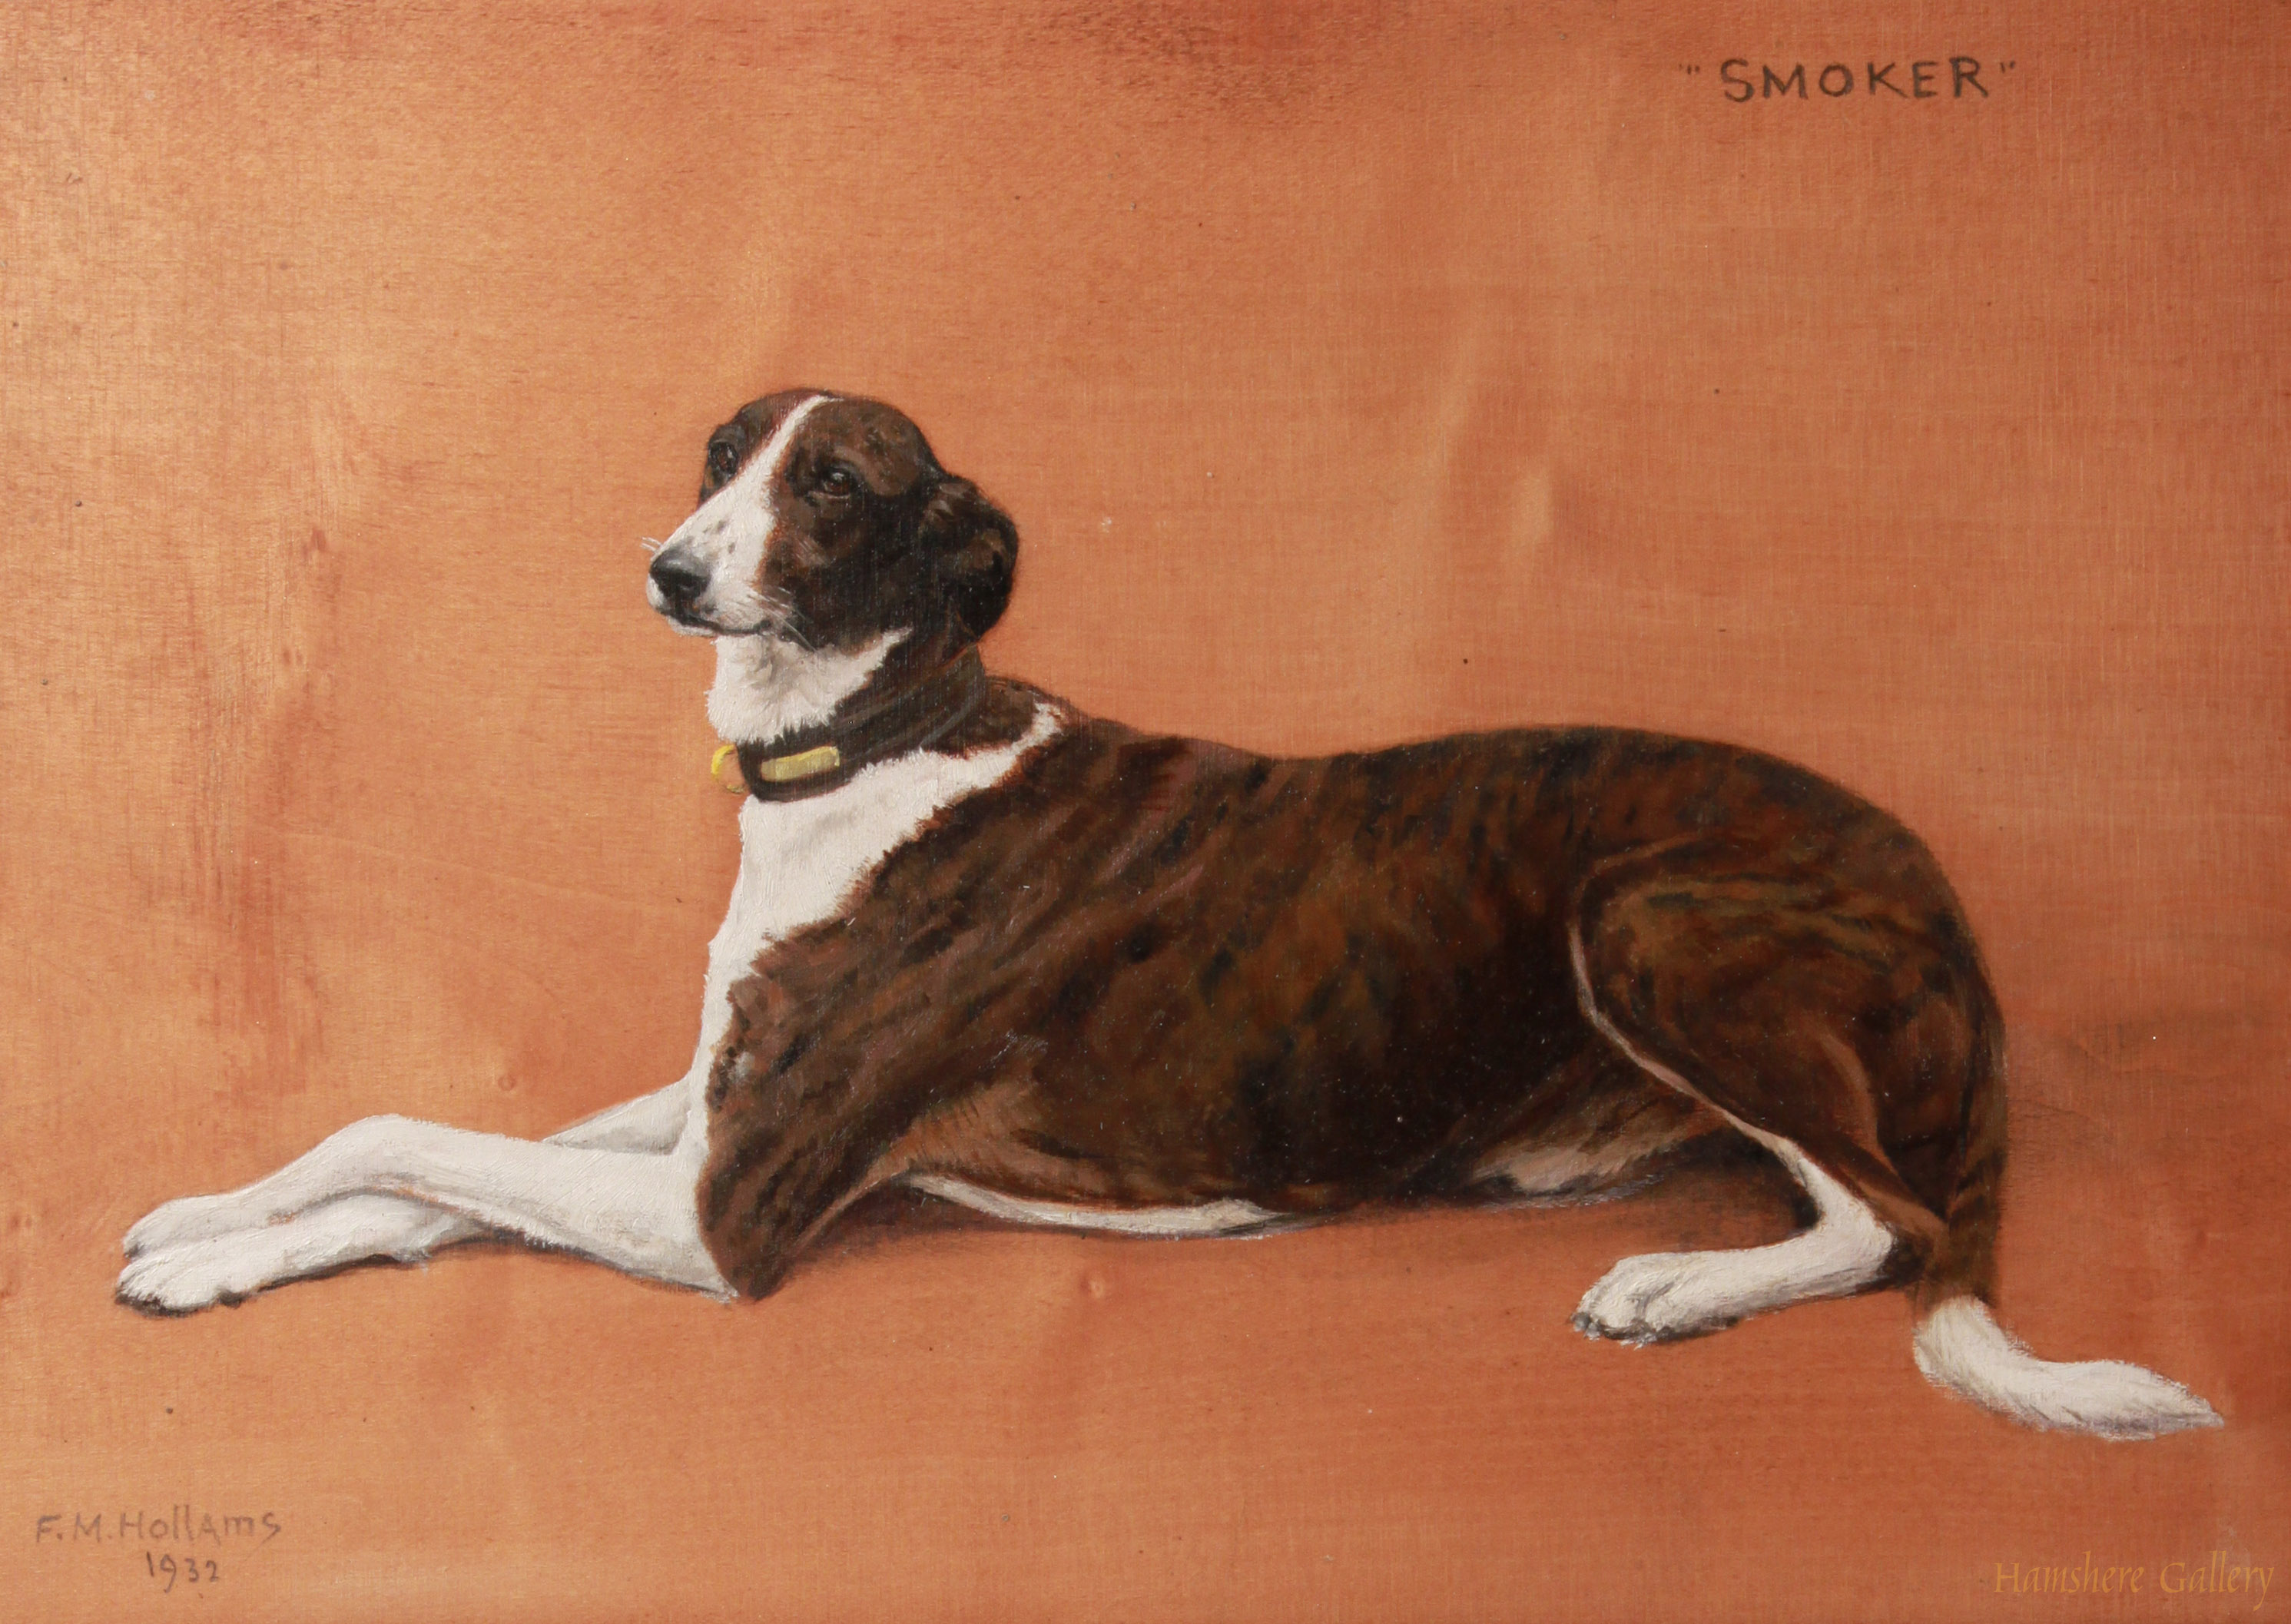 Click to see full size: Greyhound �Smoker� by Florence Mabel Hollams - Greyhound �Smoker� by Florence Mabel Hollams